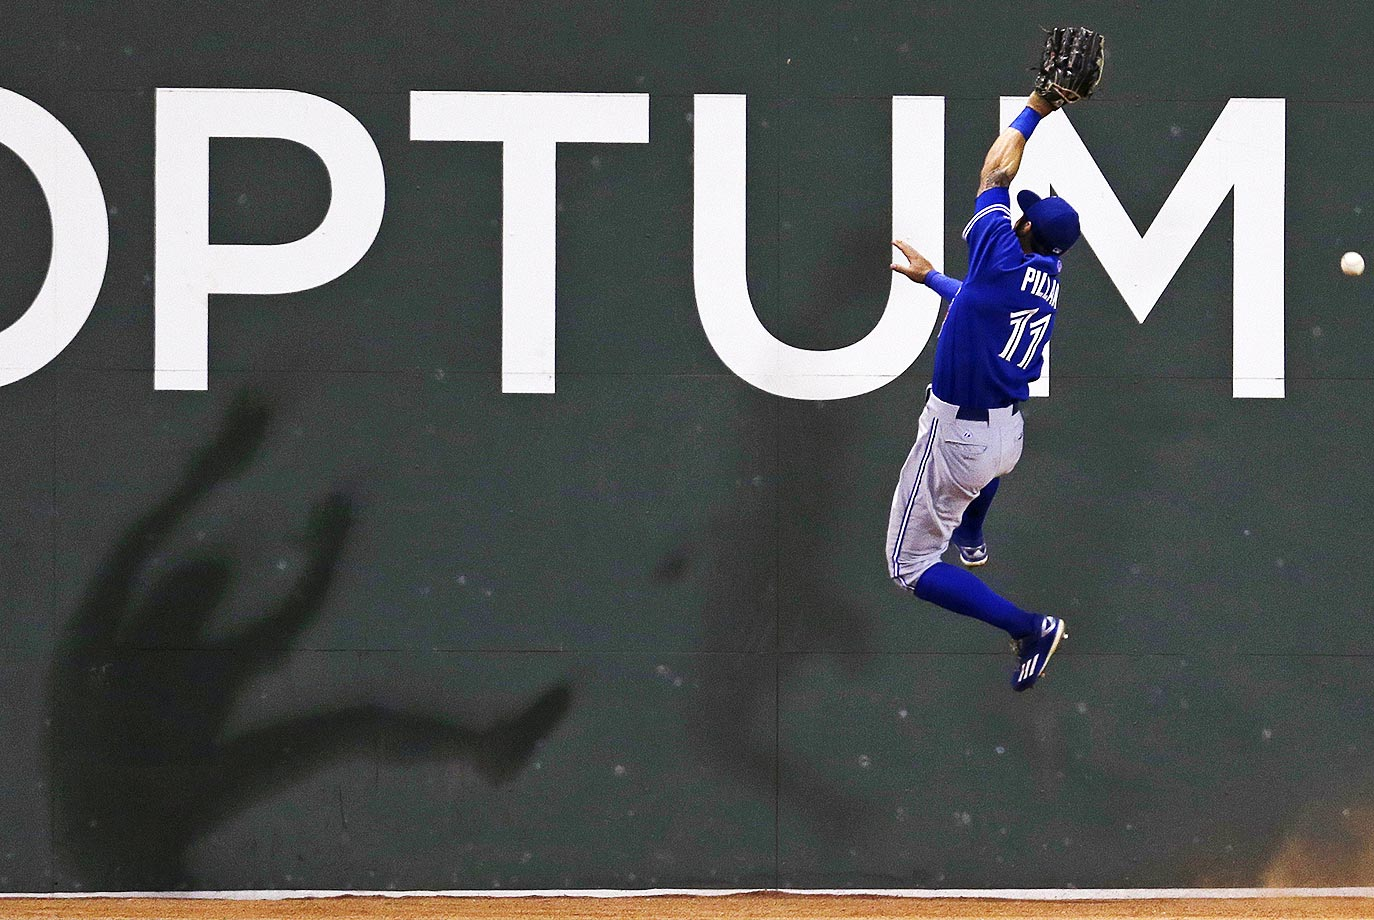 Kevin Pillar of the Toronto Blue Jays can't make a play against the Boston Red Sox.